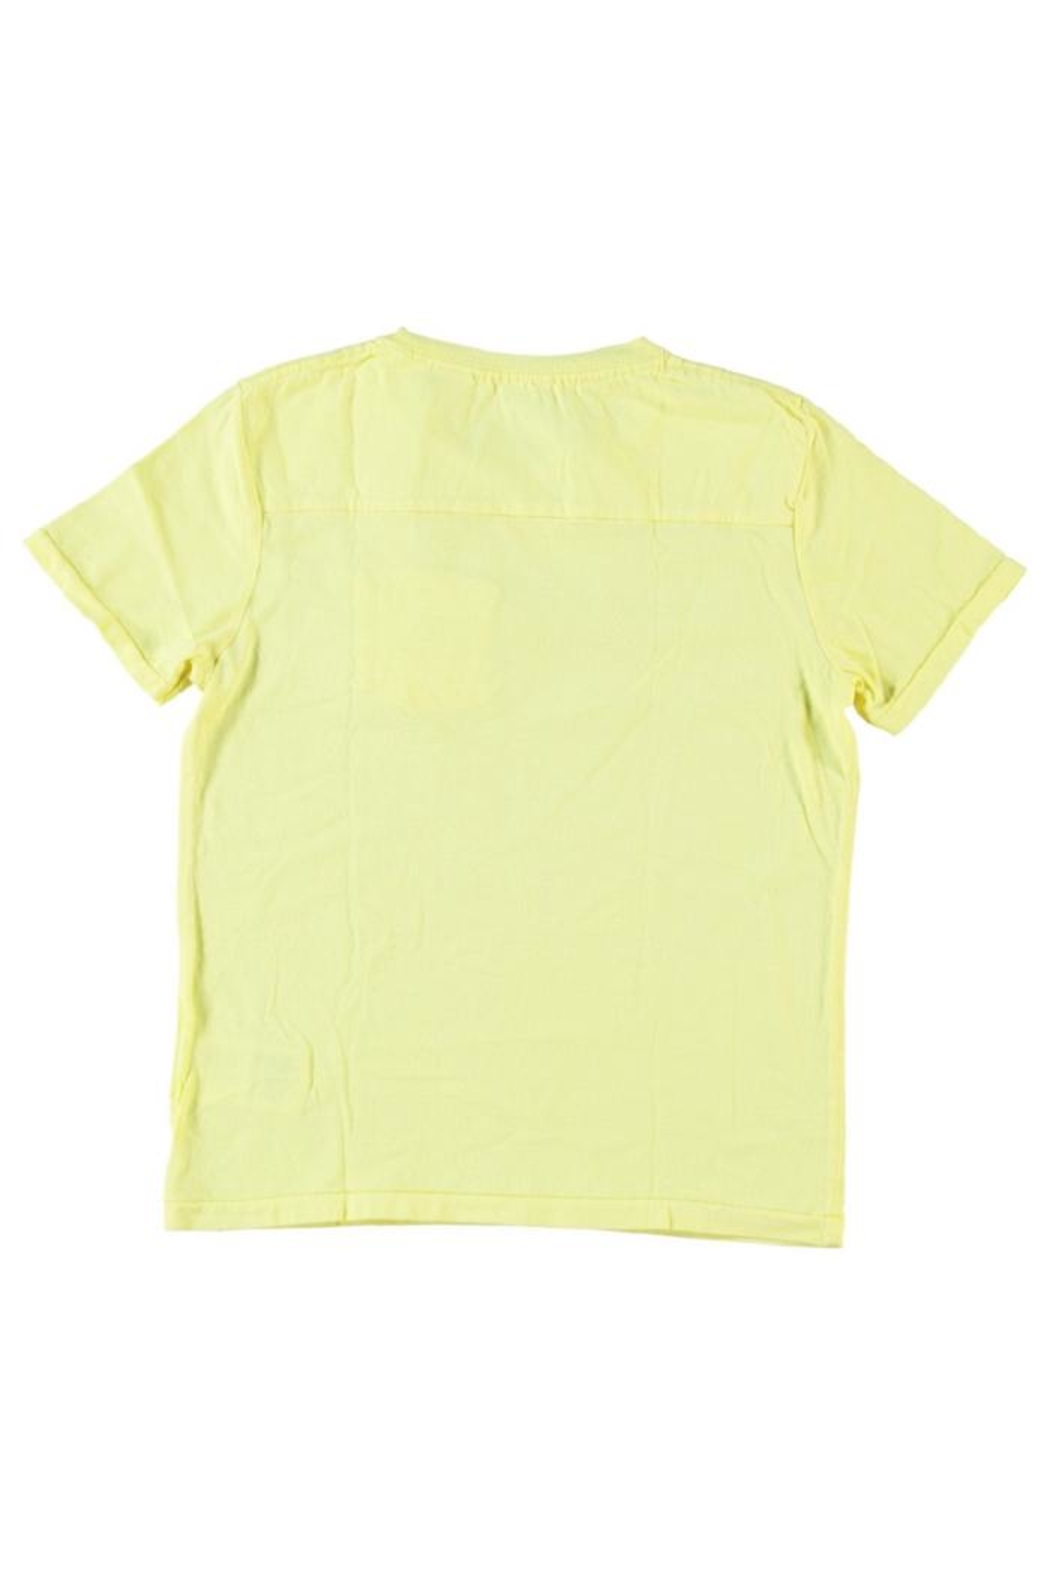 Scotch Shrunk Lemonade Pocket Tee - Front Full Image